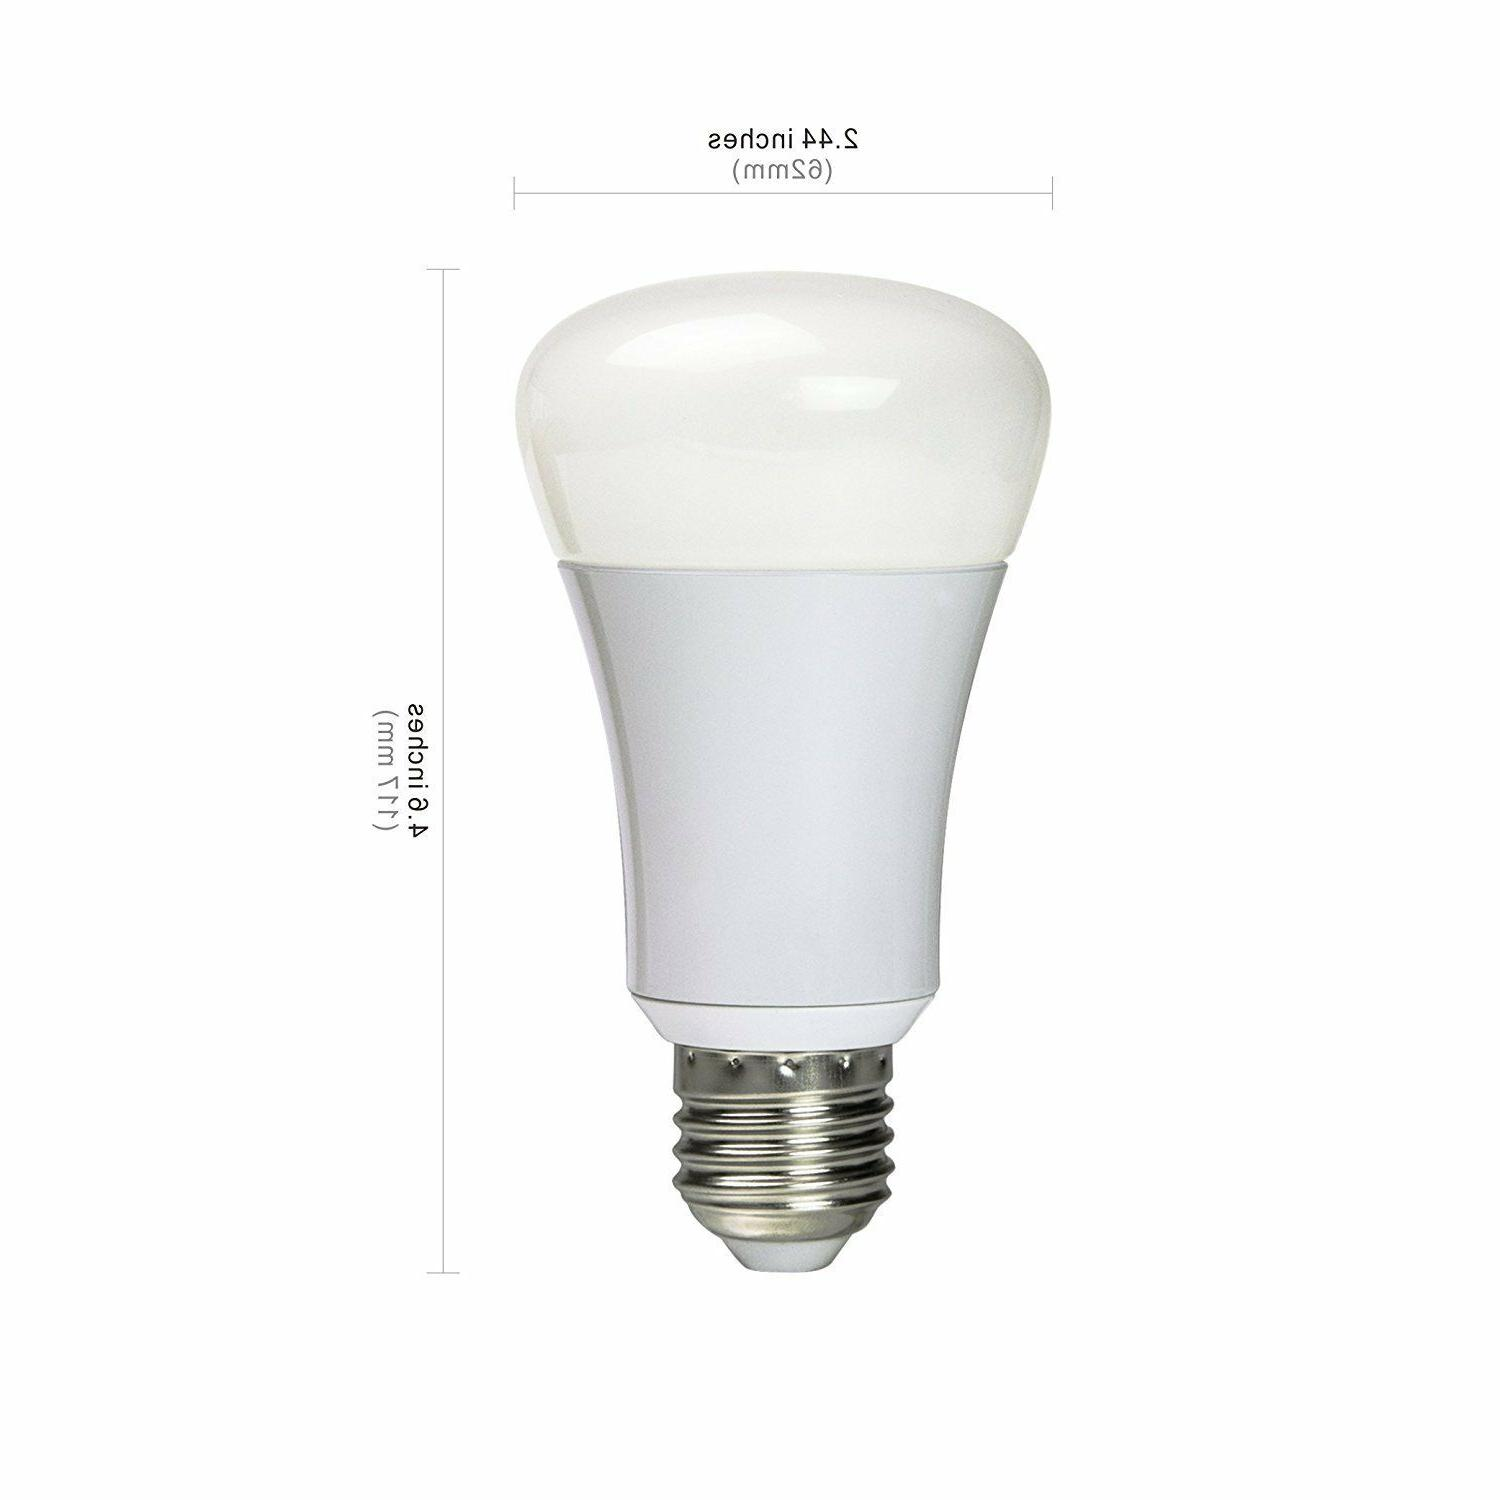 New E26/E27 Dawn Light Lamp Energy Saving US